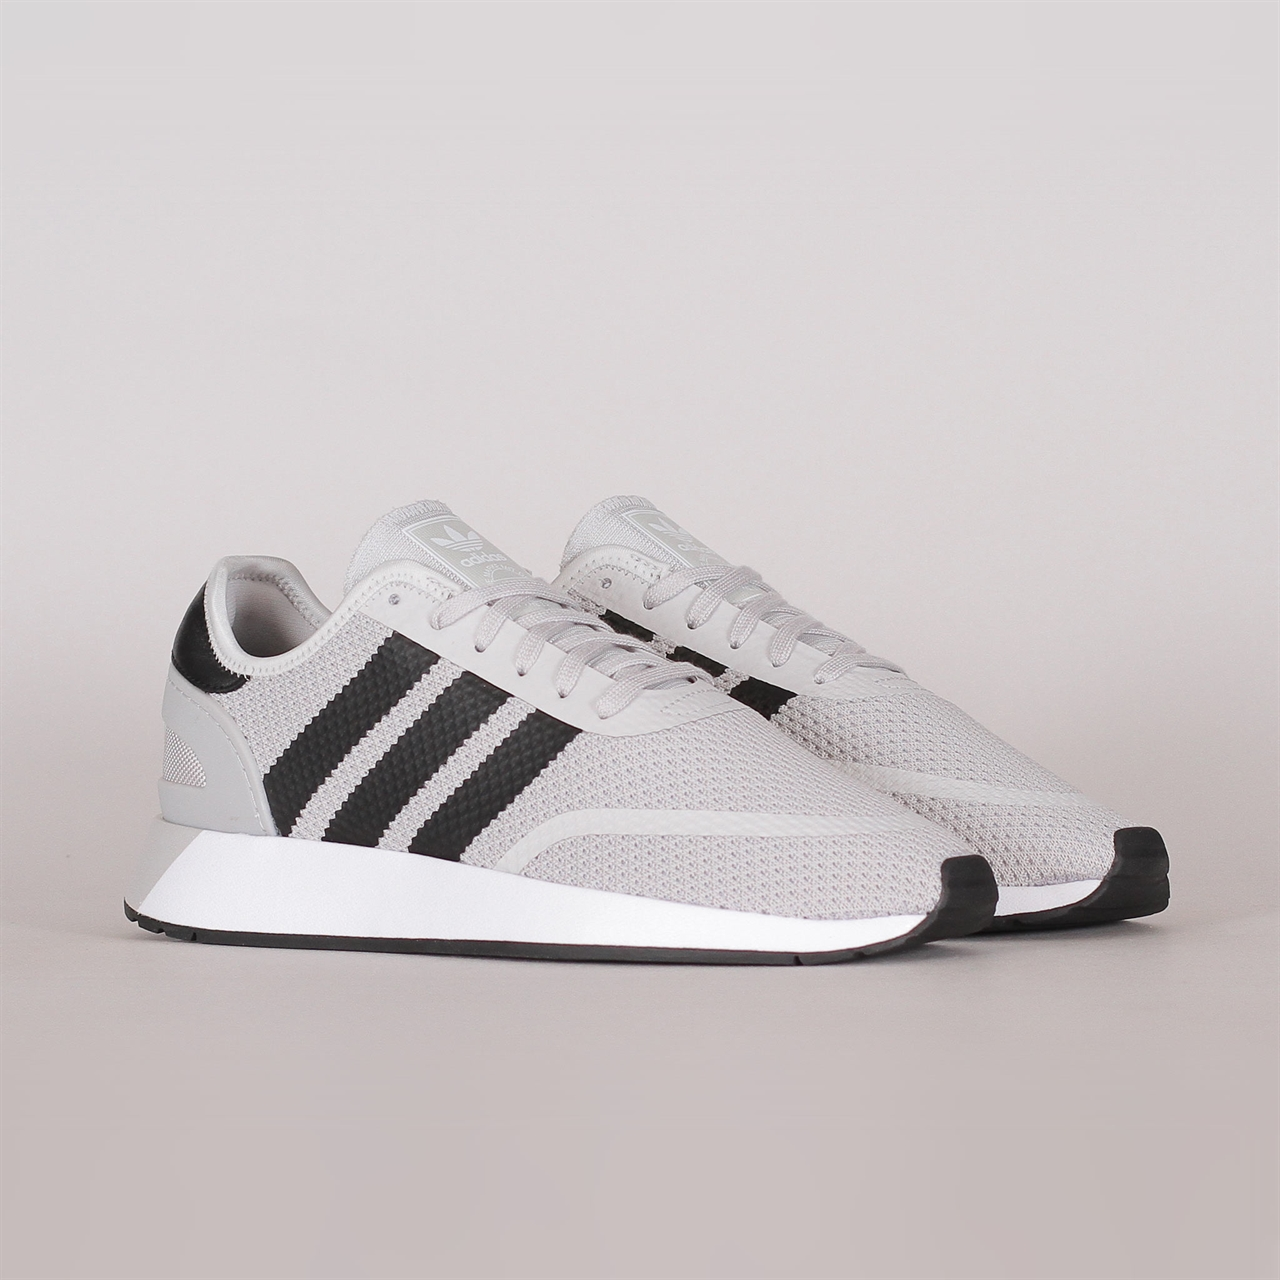 9606f2c131d Shelta - Adidas Originals N-5923 (AQ1125)